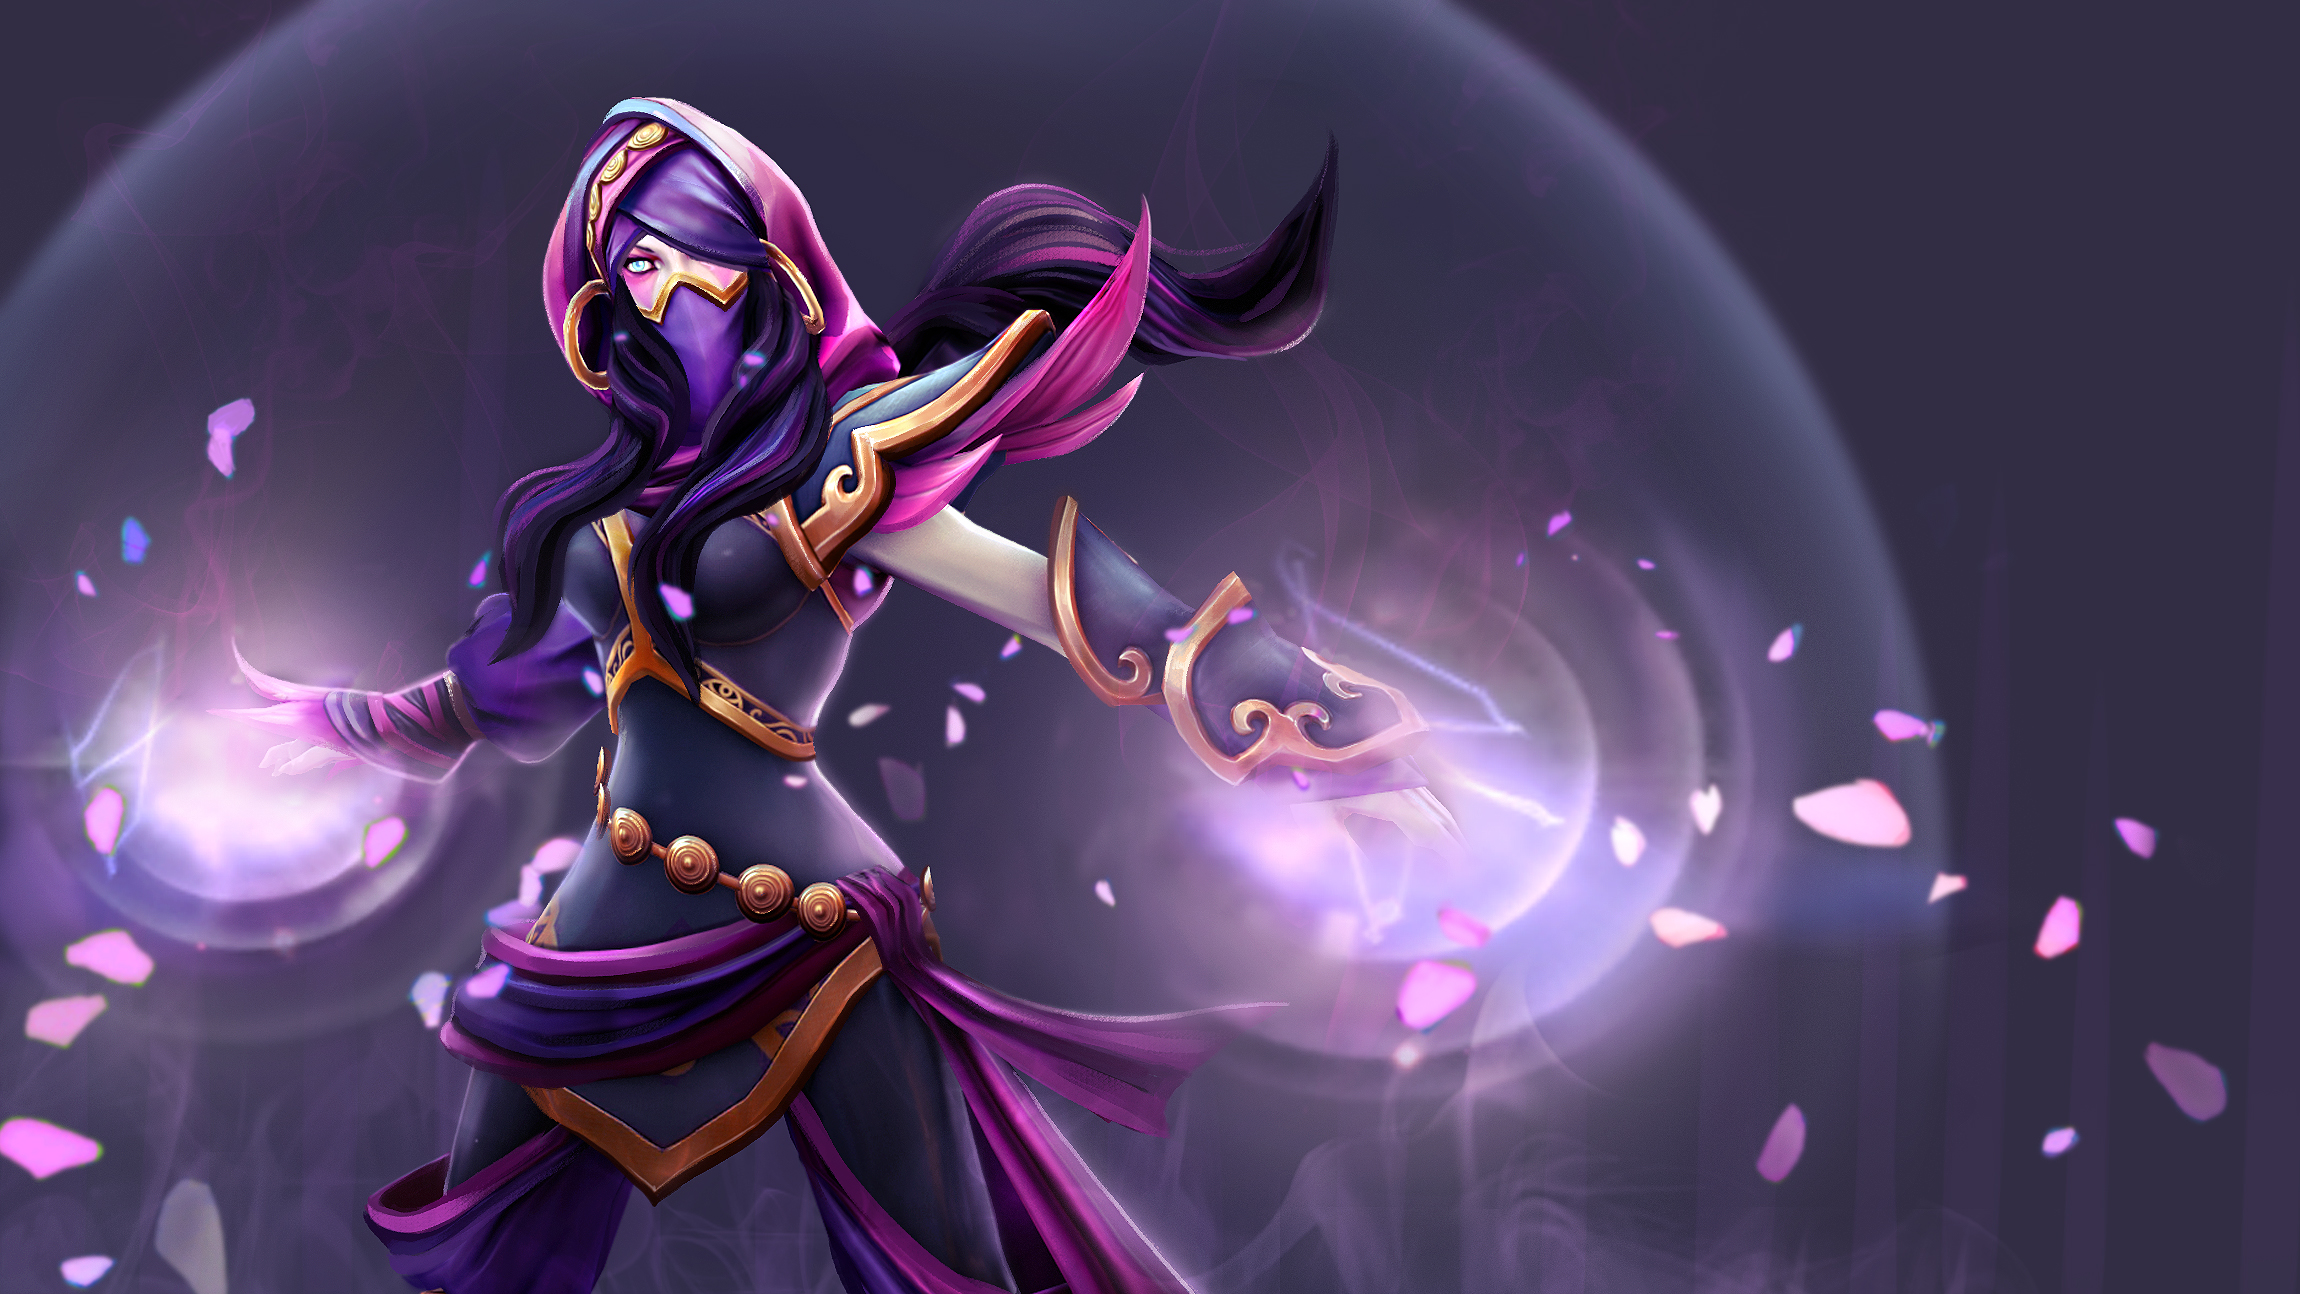 Dota 2 Templar Assassin Wallpaper - WallpaperSafari